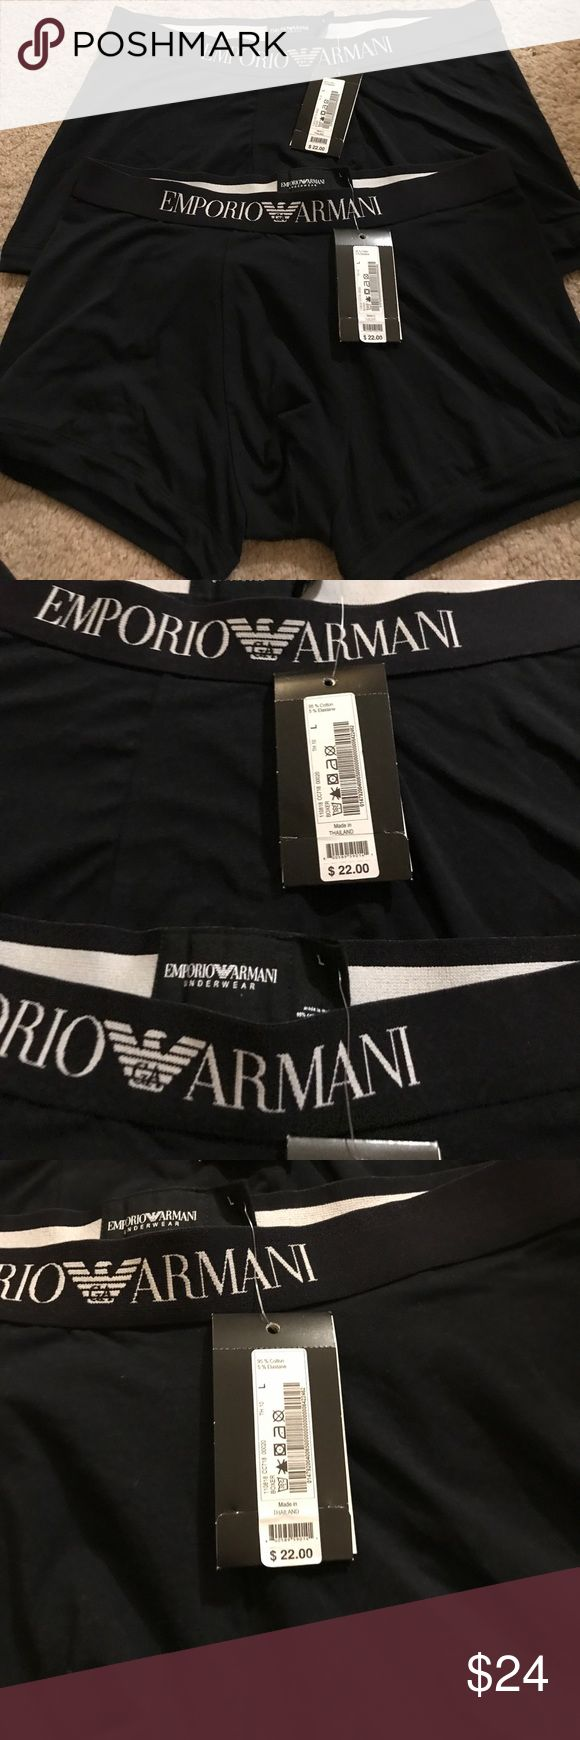 Set of 2 Emporio Armani Boxer Briefs Set of 2 Boxer Briefs. Never worn with tags. Comfortable fit. Price includes set of 2. Emporio Armani Underwear & Socks Boxer Briefs